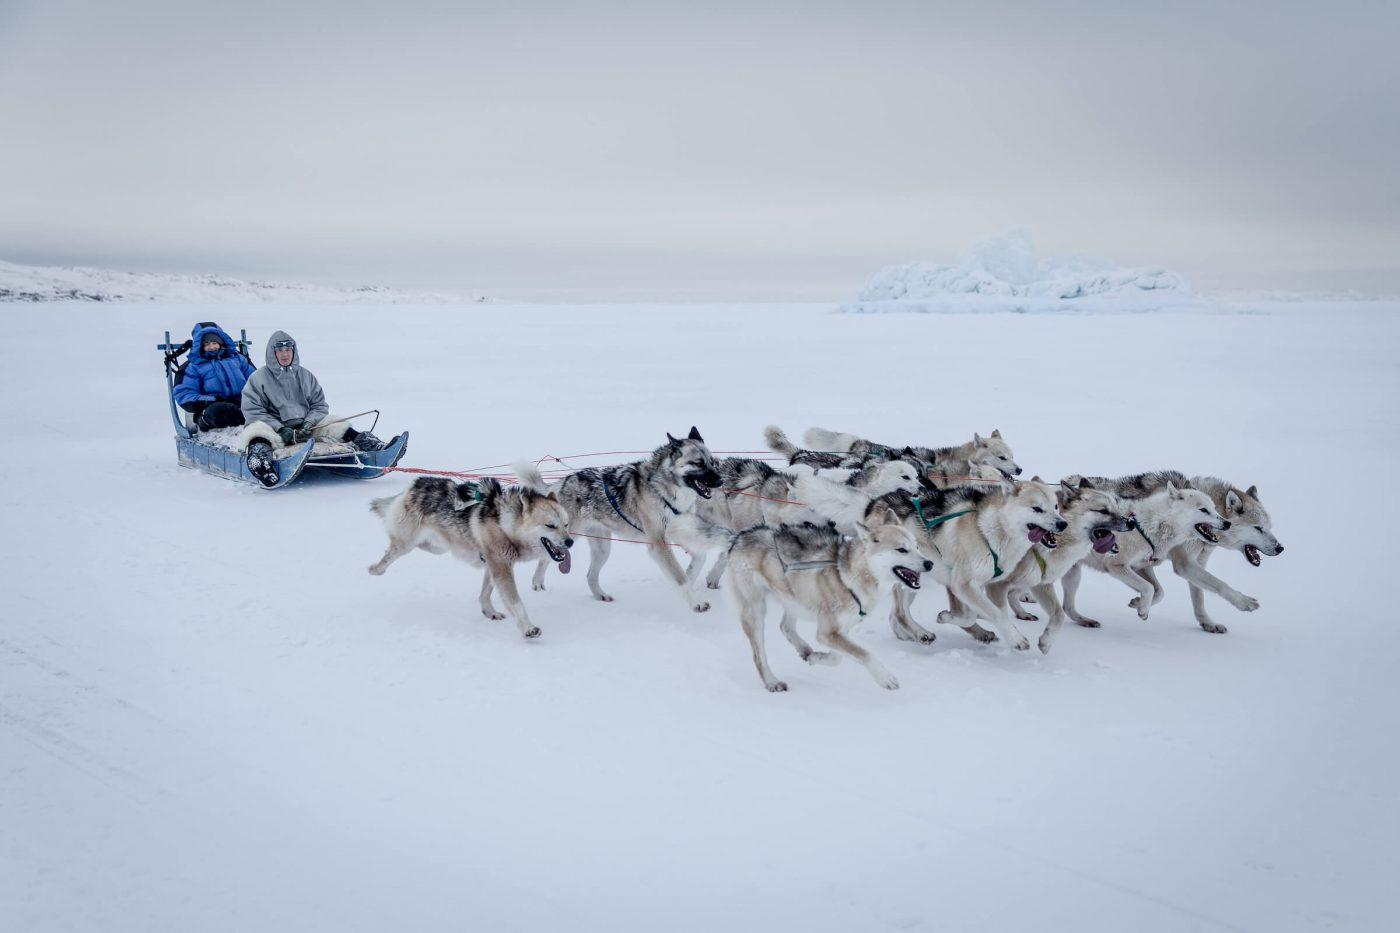 A dog sled on the sea ice between Ilulissat and Oqaatsut in Greenland. Photo by Mads Pihl - Visit Greenland